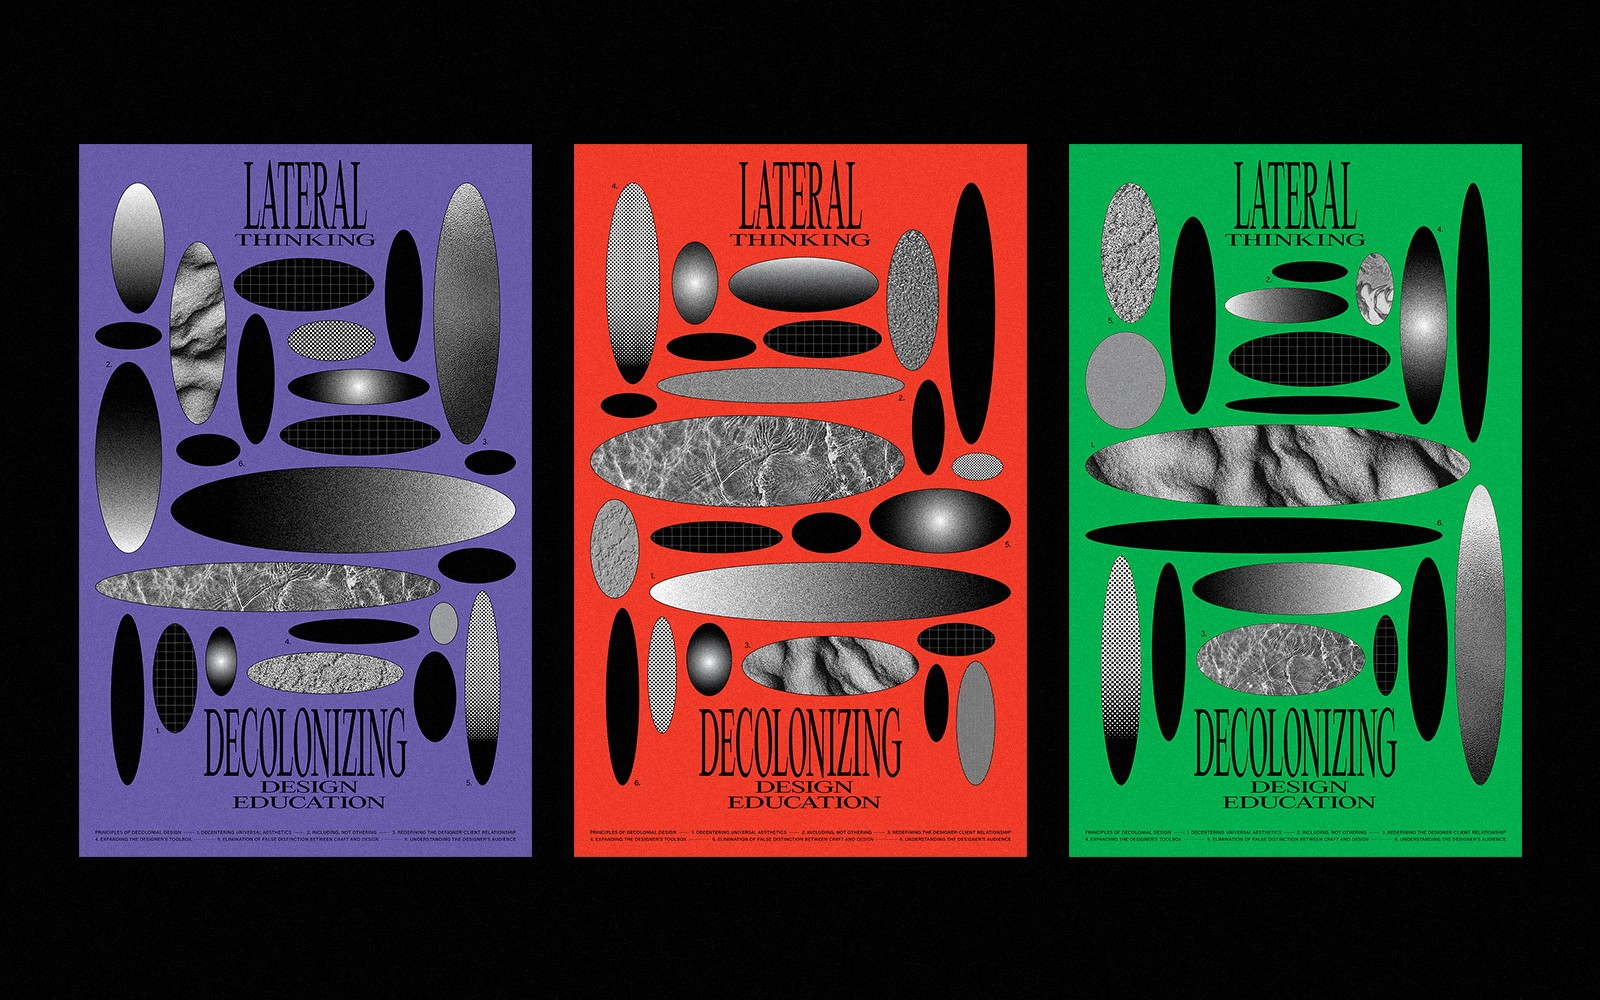 """A series of posters that include circular shapes and text that reads """"Lateral Thinking,"""" each in purple, red, and green."""